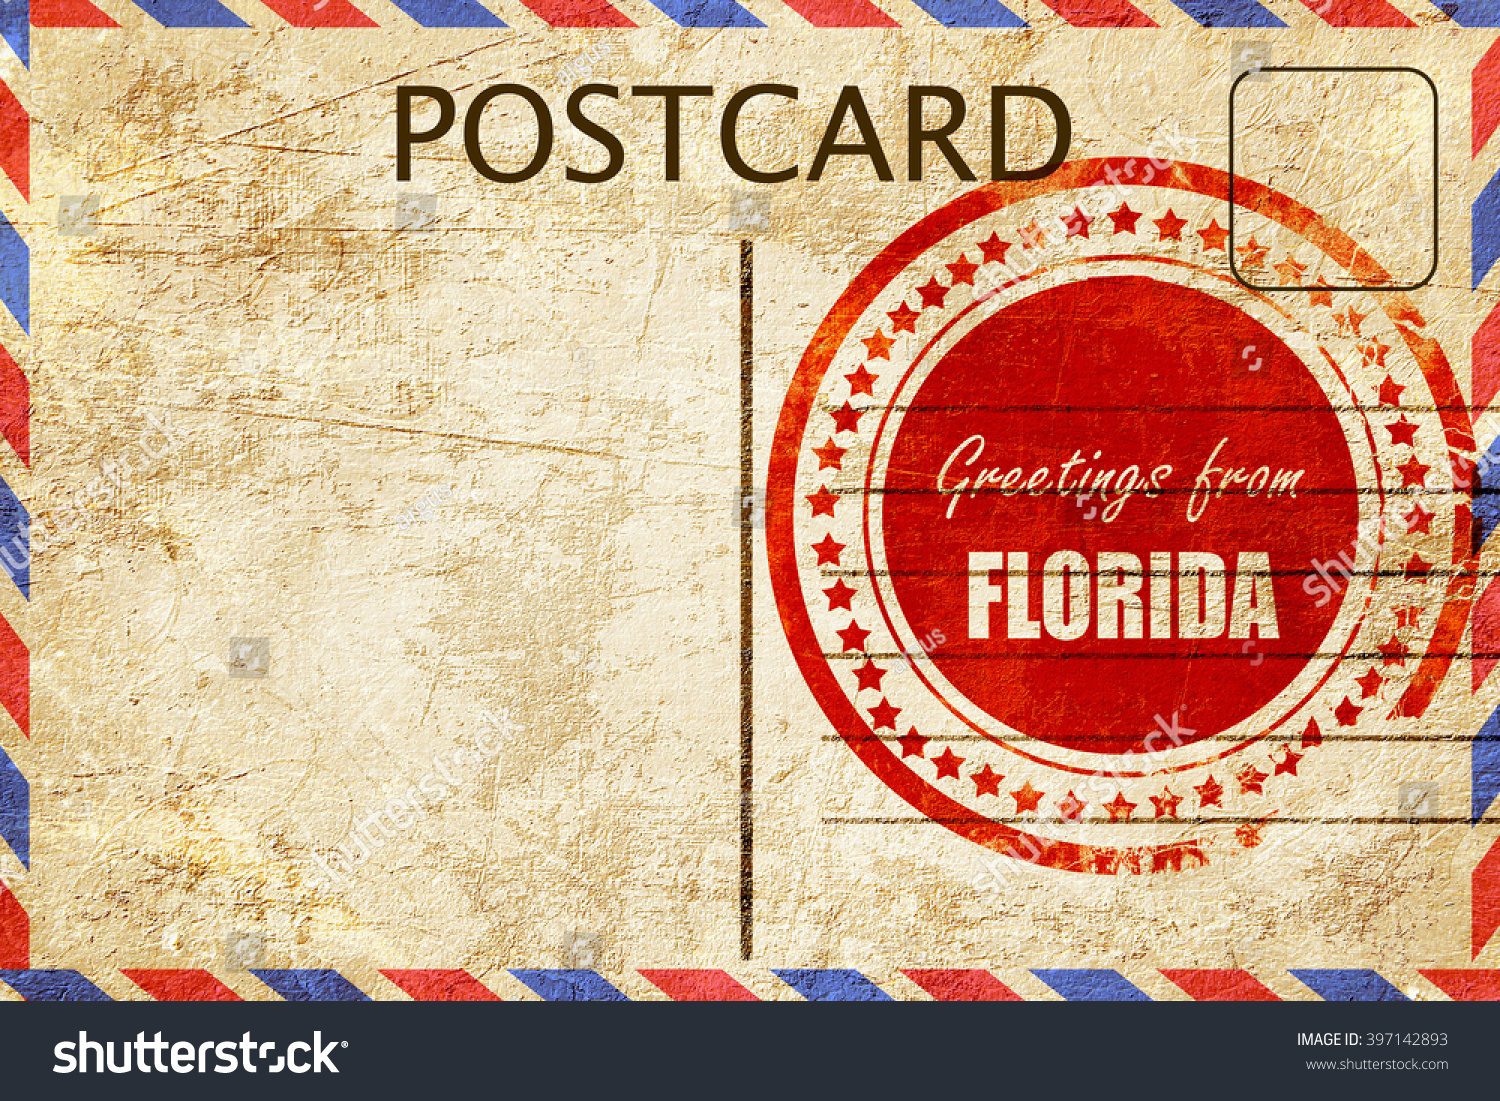 Vintage postcard greetings florida stock illustration 397142893 vintage postcard greetings from florida kristyandbryce Image collections